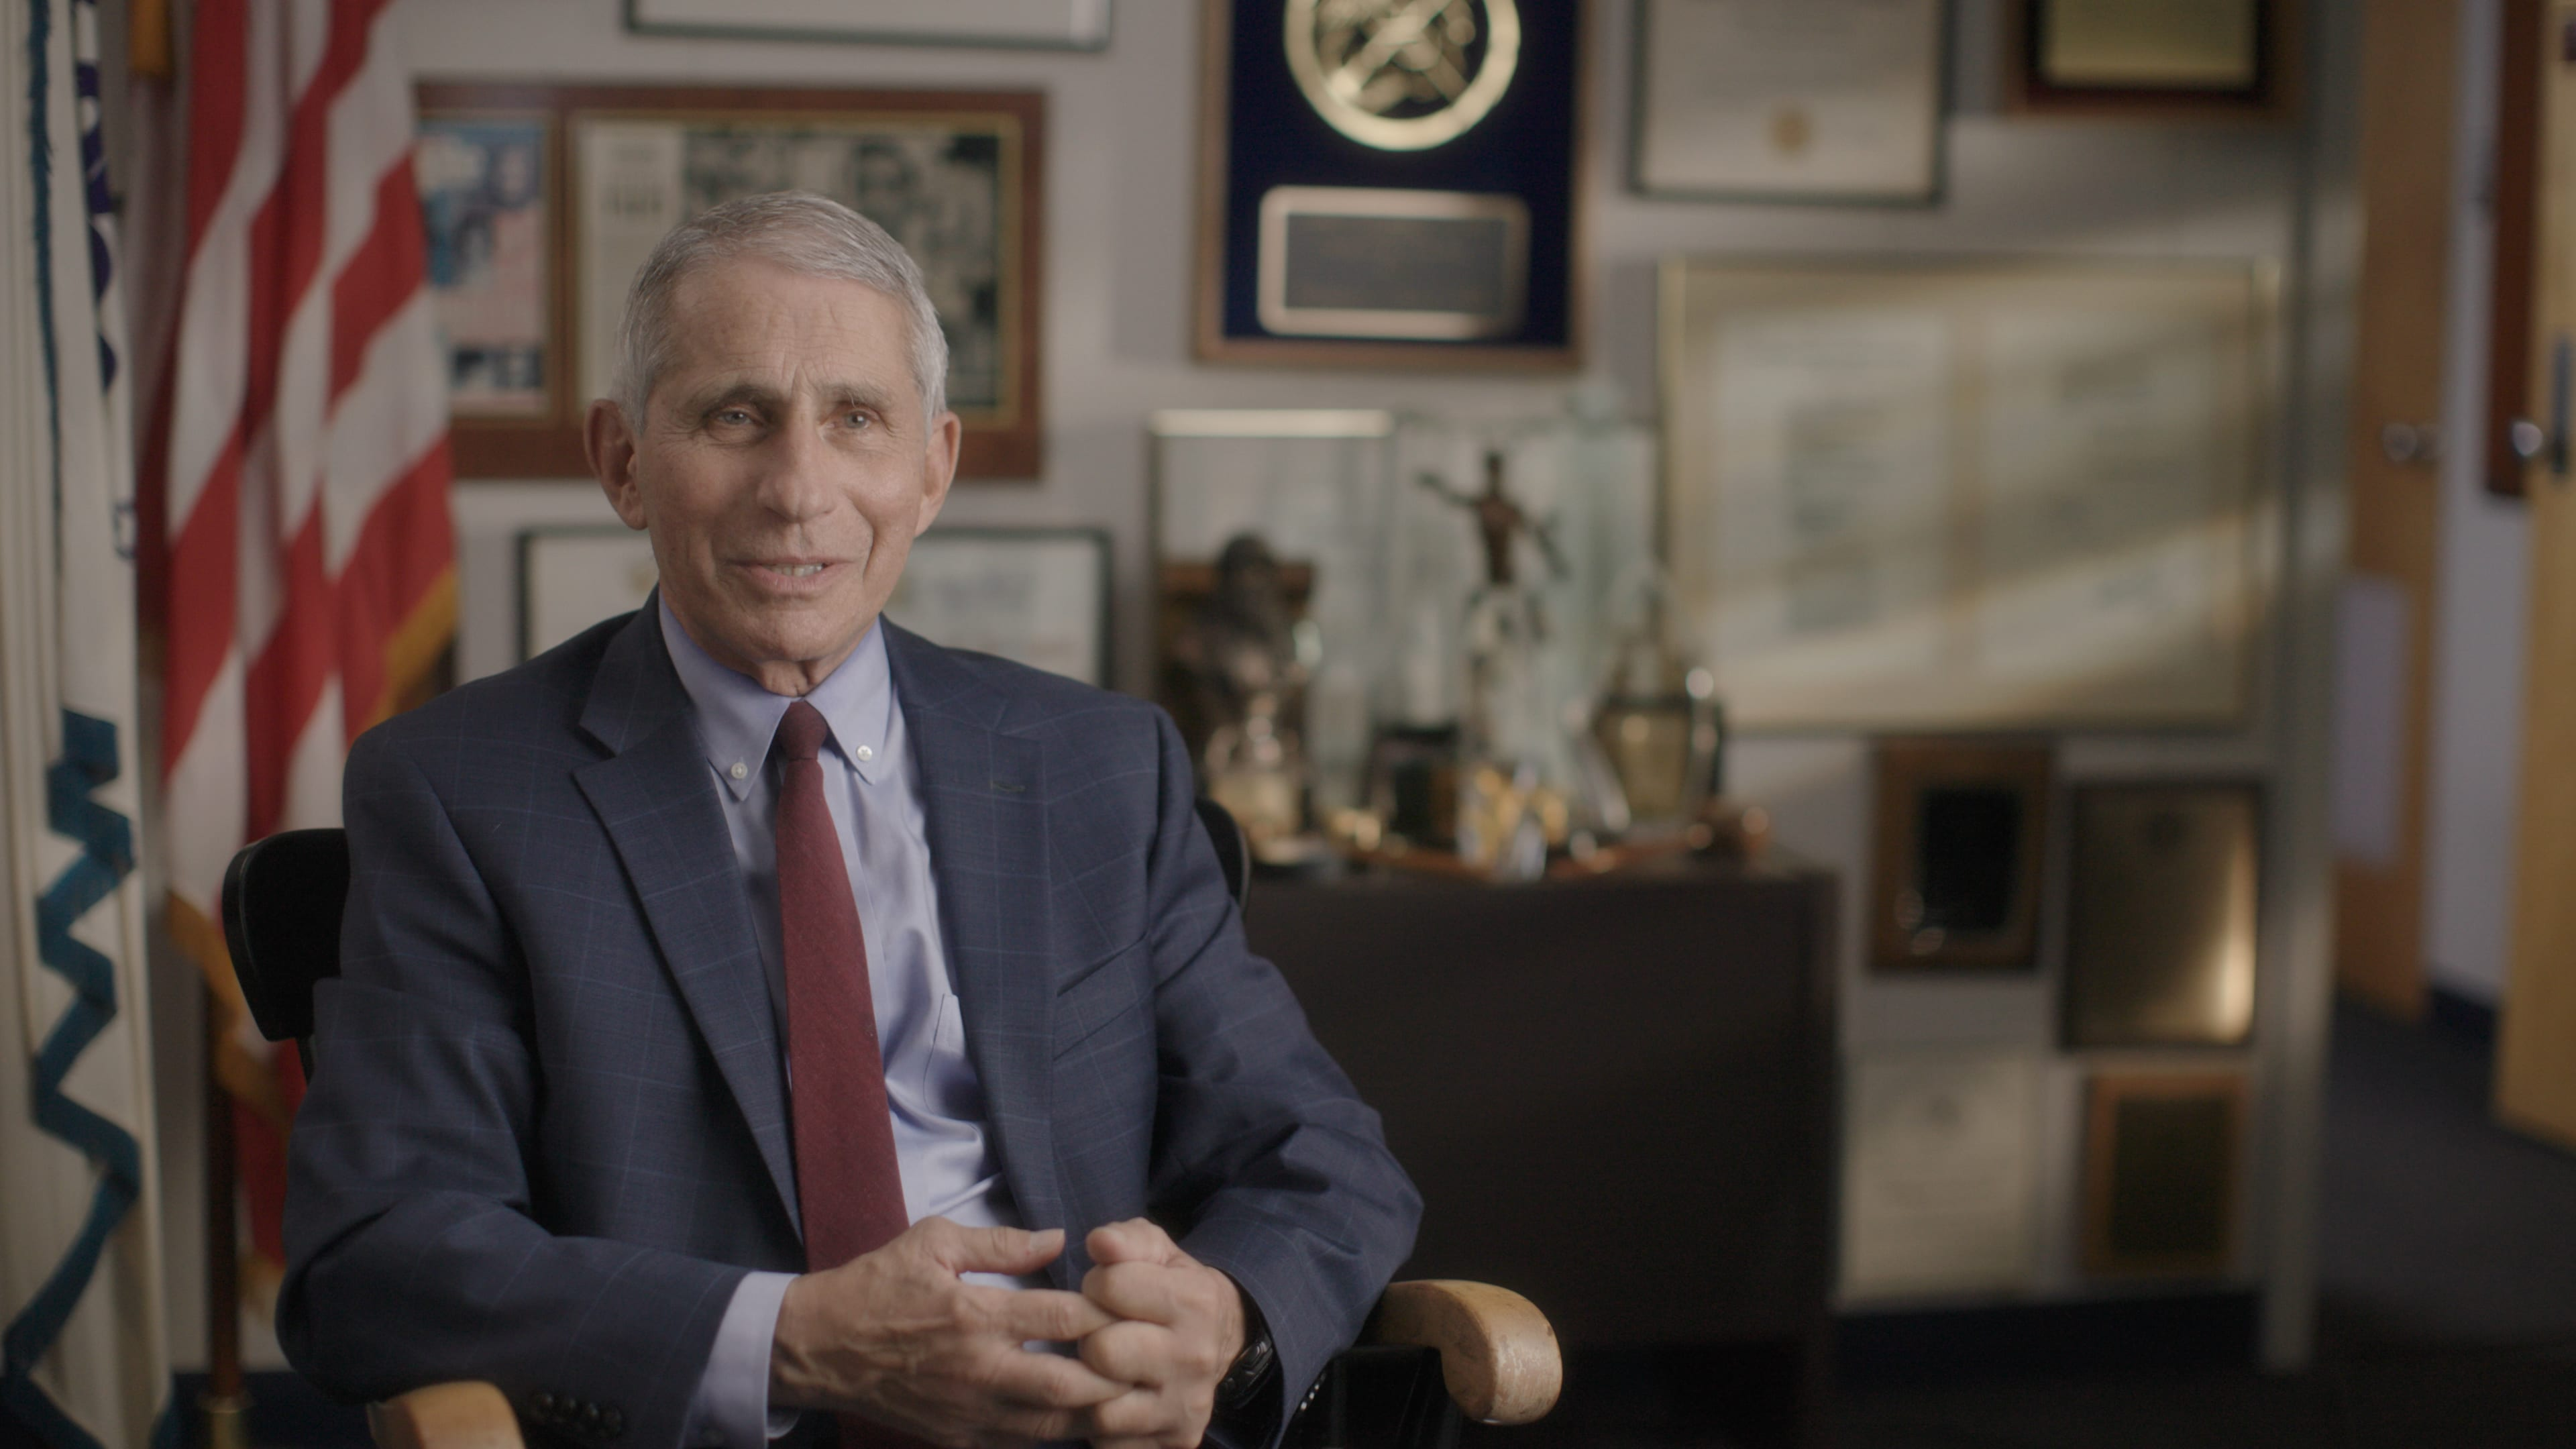 'Fauci,' The Feature Documentary From National Geographic Documentary Films, Starts Streaming On Disney+ On October 6